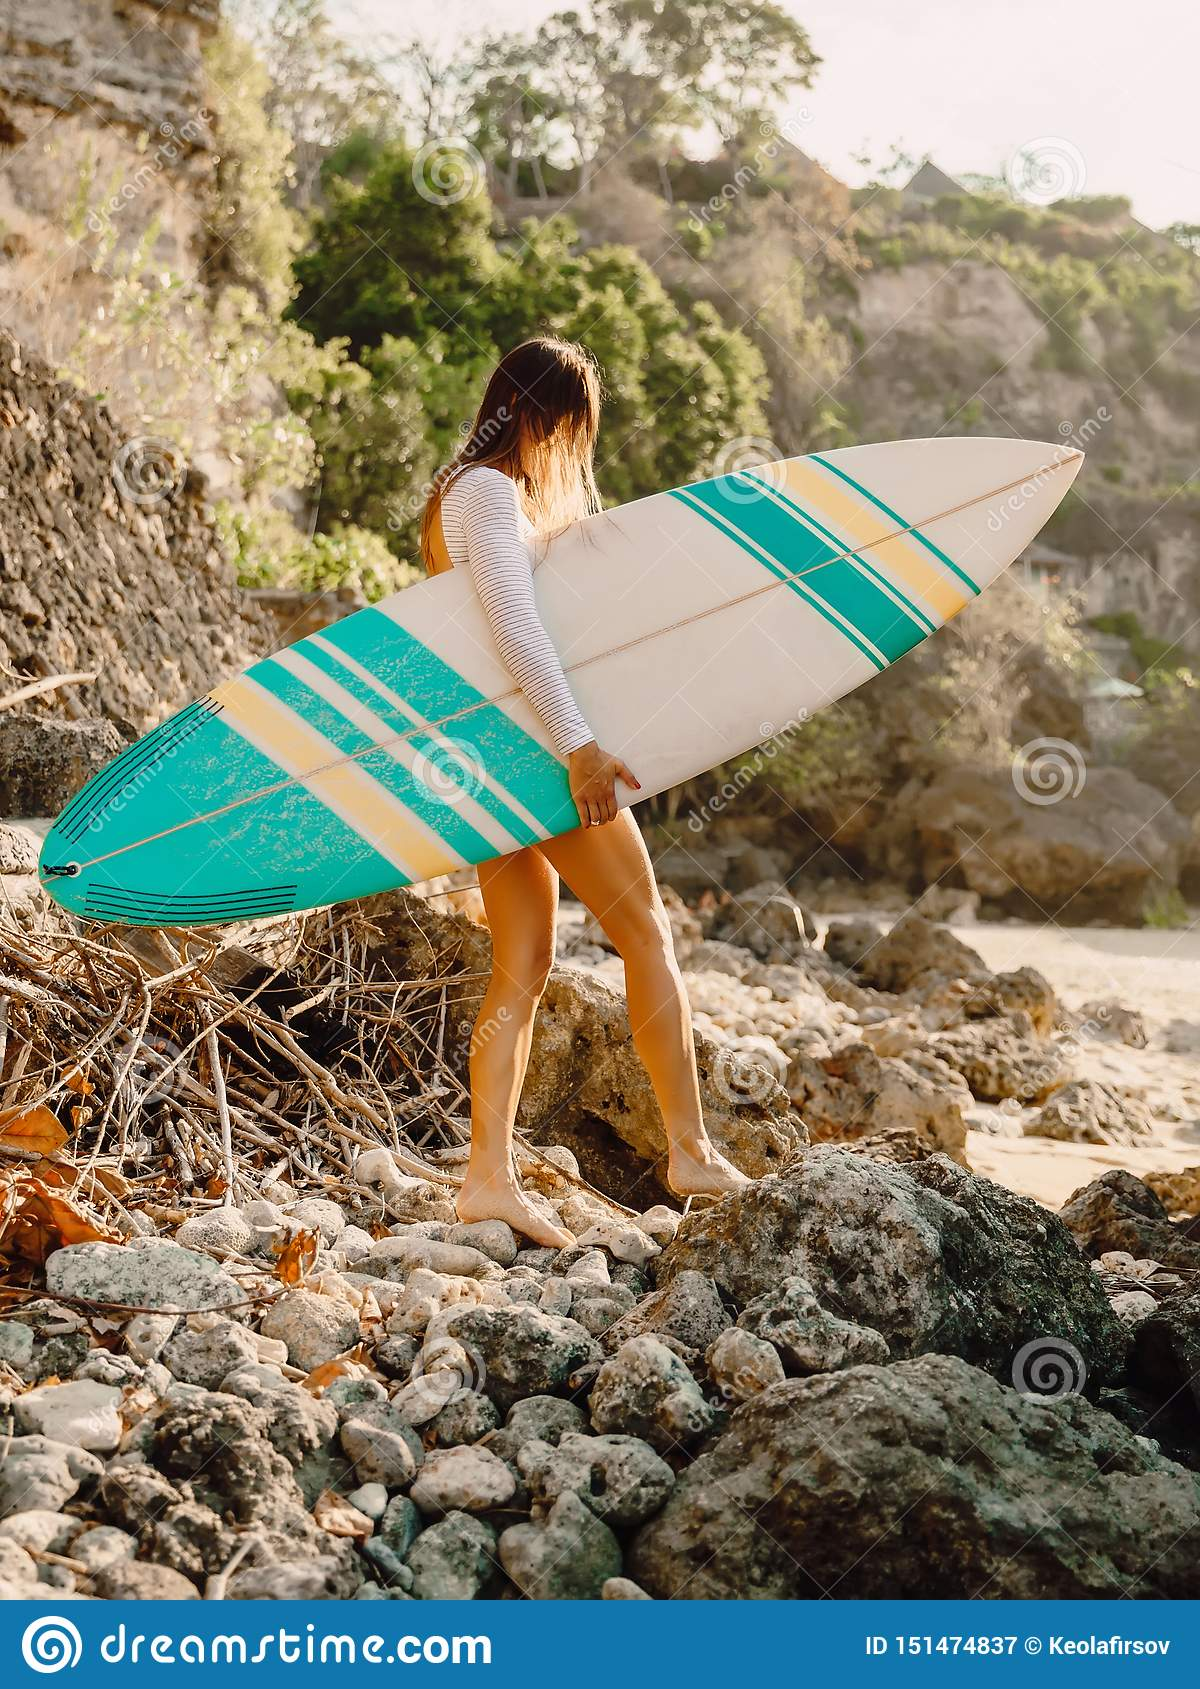 Surfer woman with surfboard. Surfing in ocean